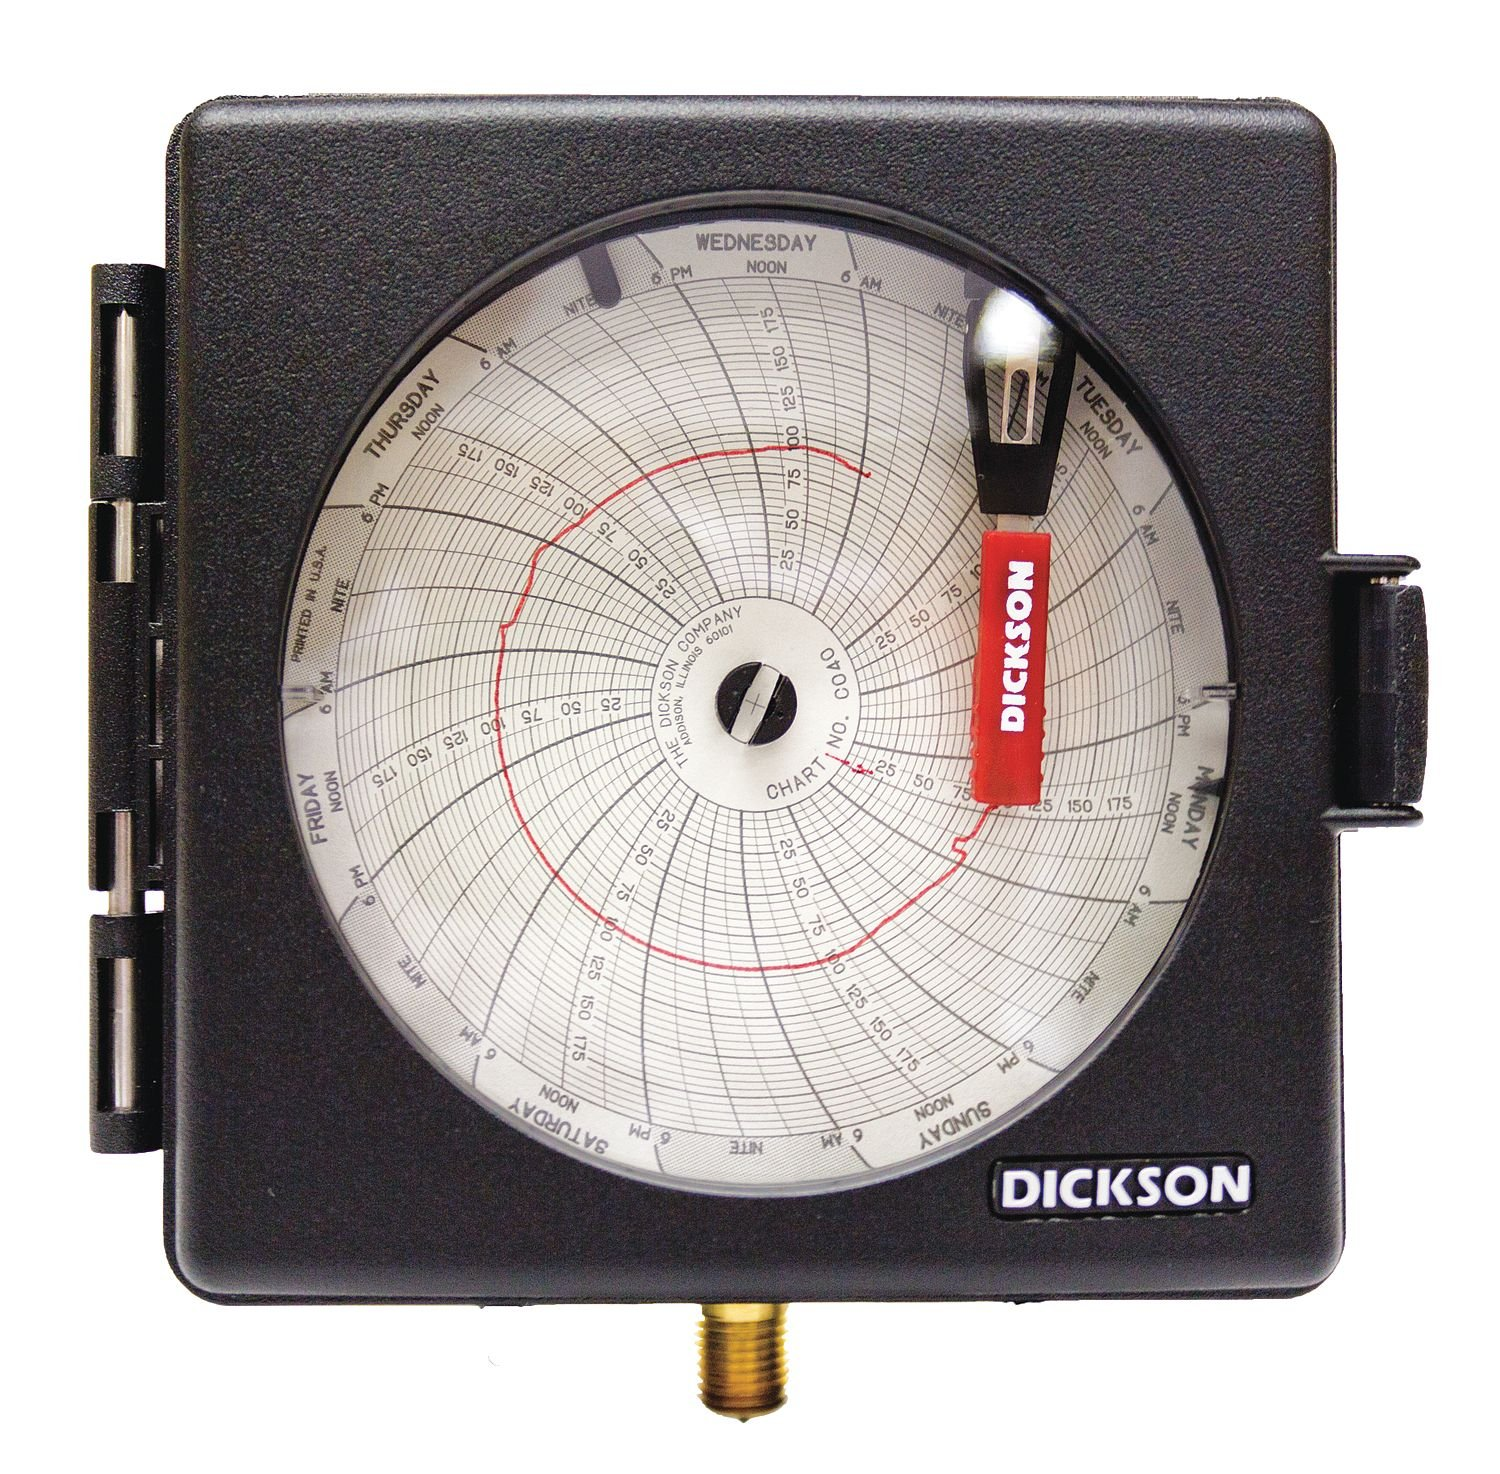 Dickson PW474 Pressure Chart Recorder, 0 to 200 PSI